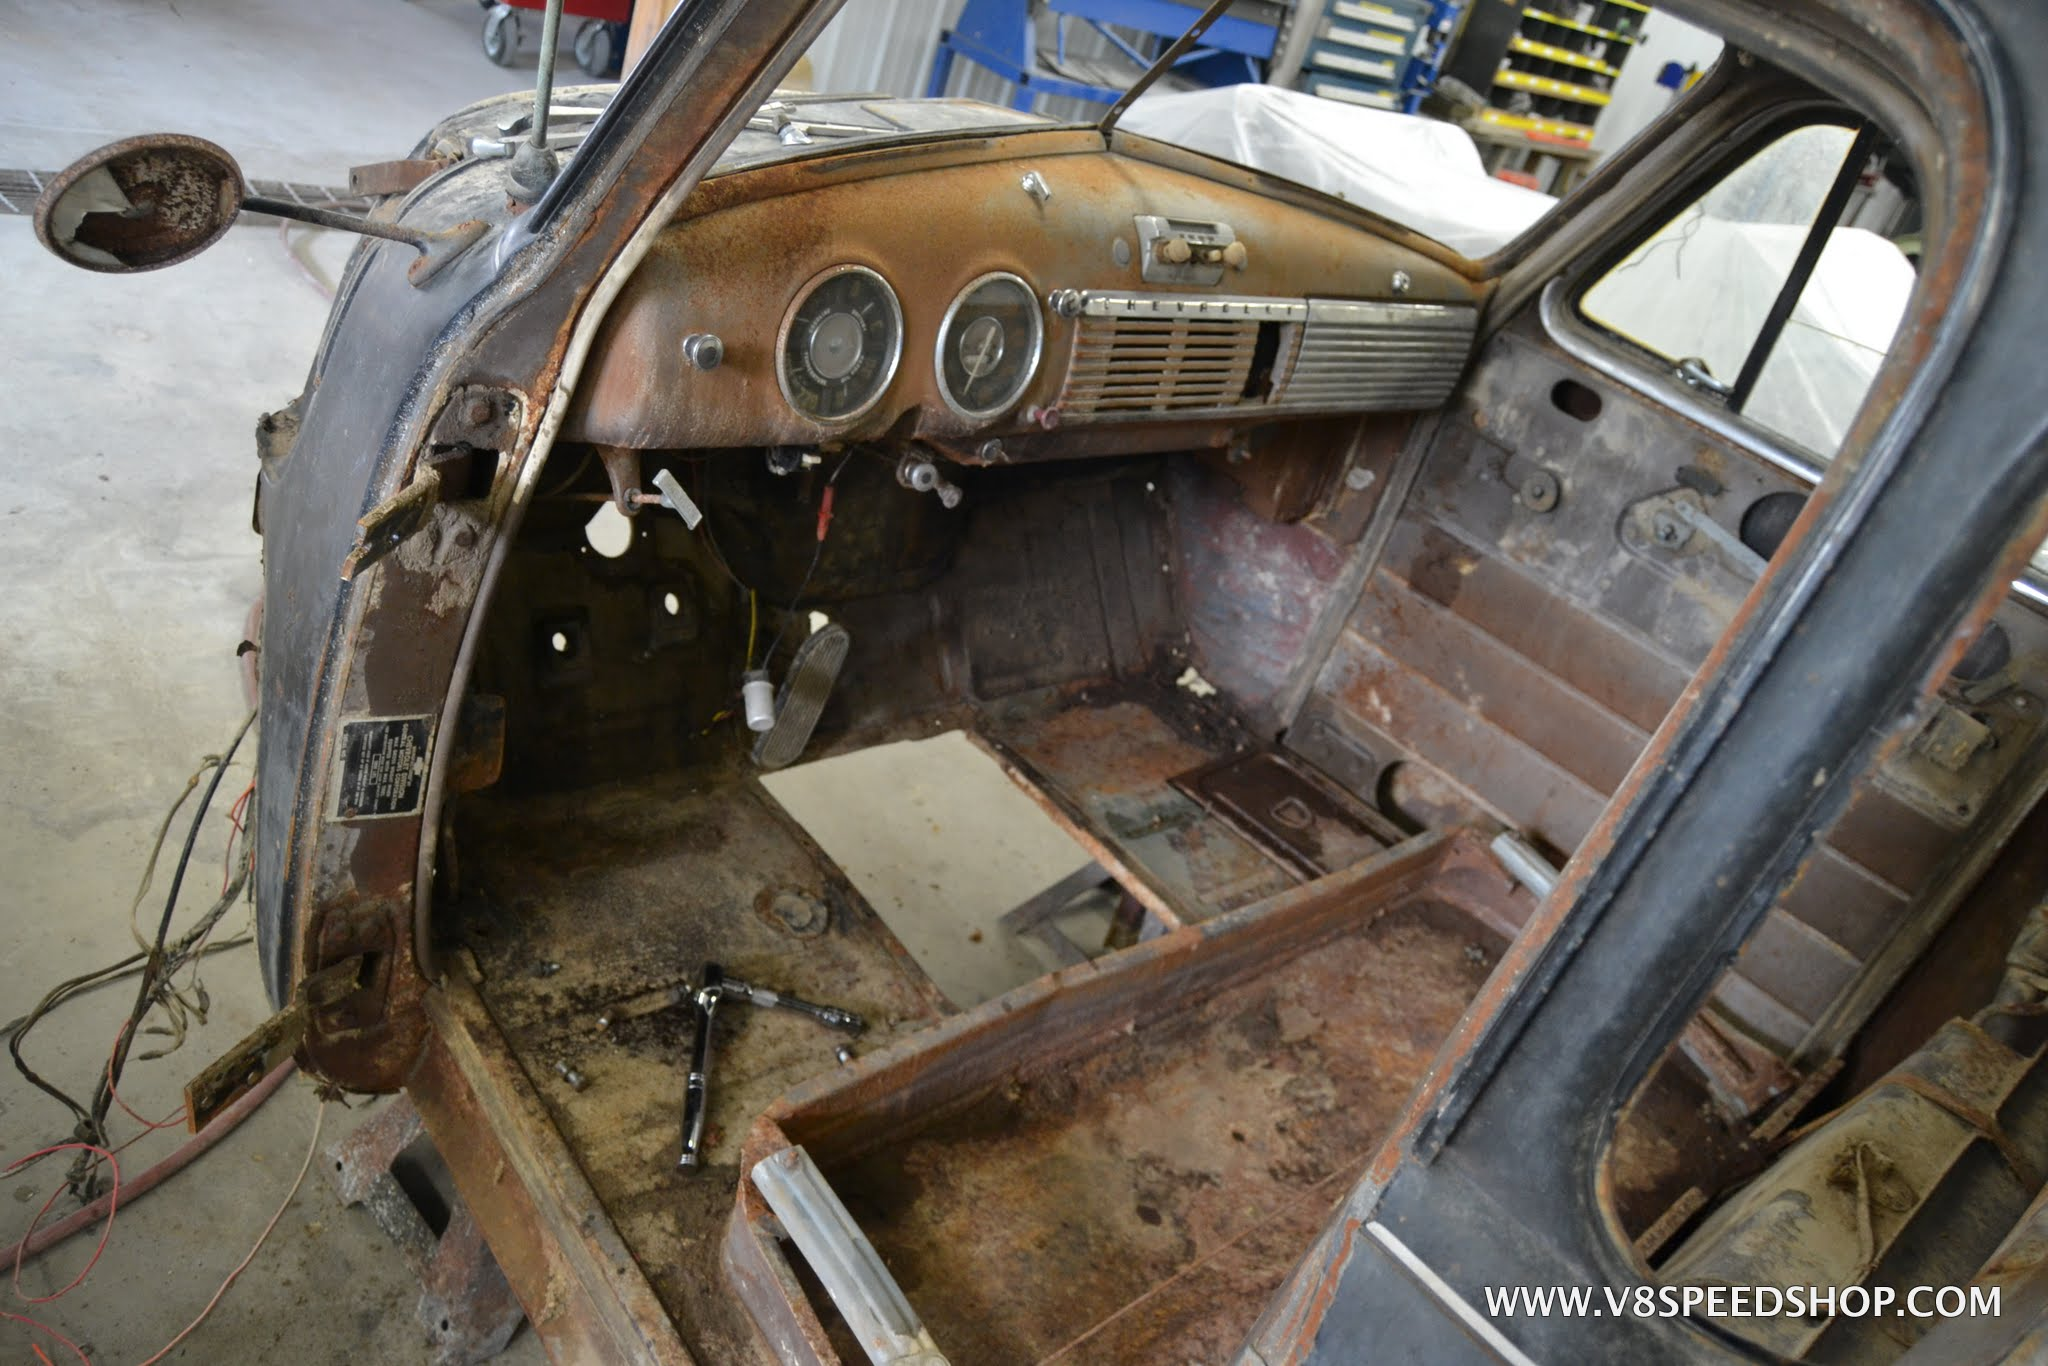 1951 Chevrolet Dump Pickup Truck Restoration Photo Gallery V8tv Chevy Steering Wheel Click To Enlarge Image Pu Gh 05 10 16 0011